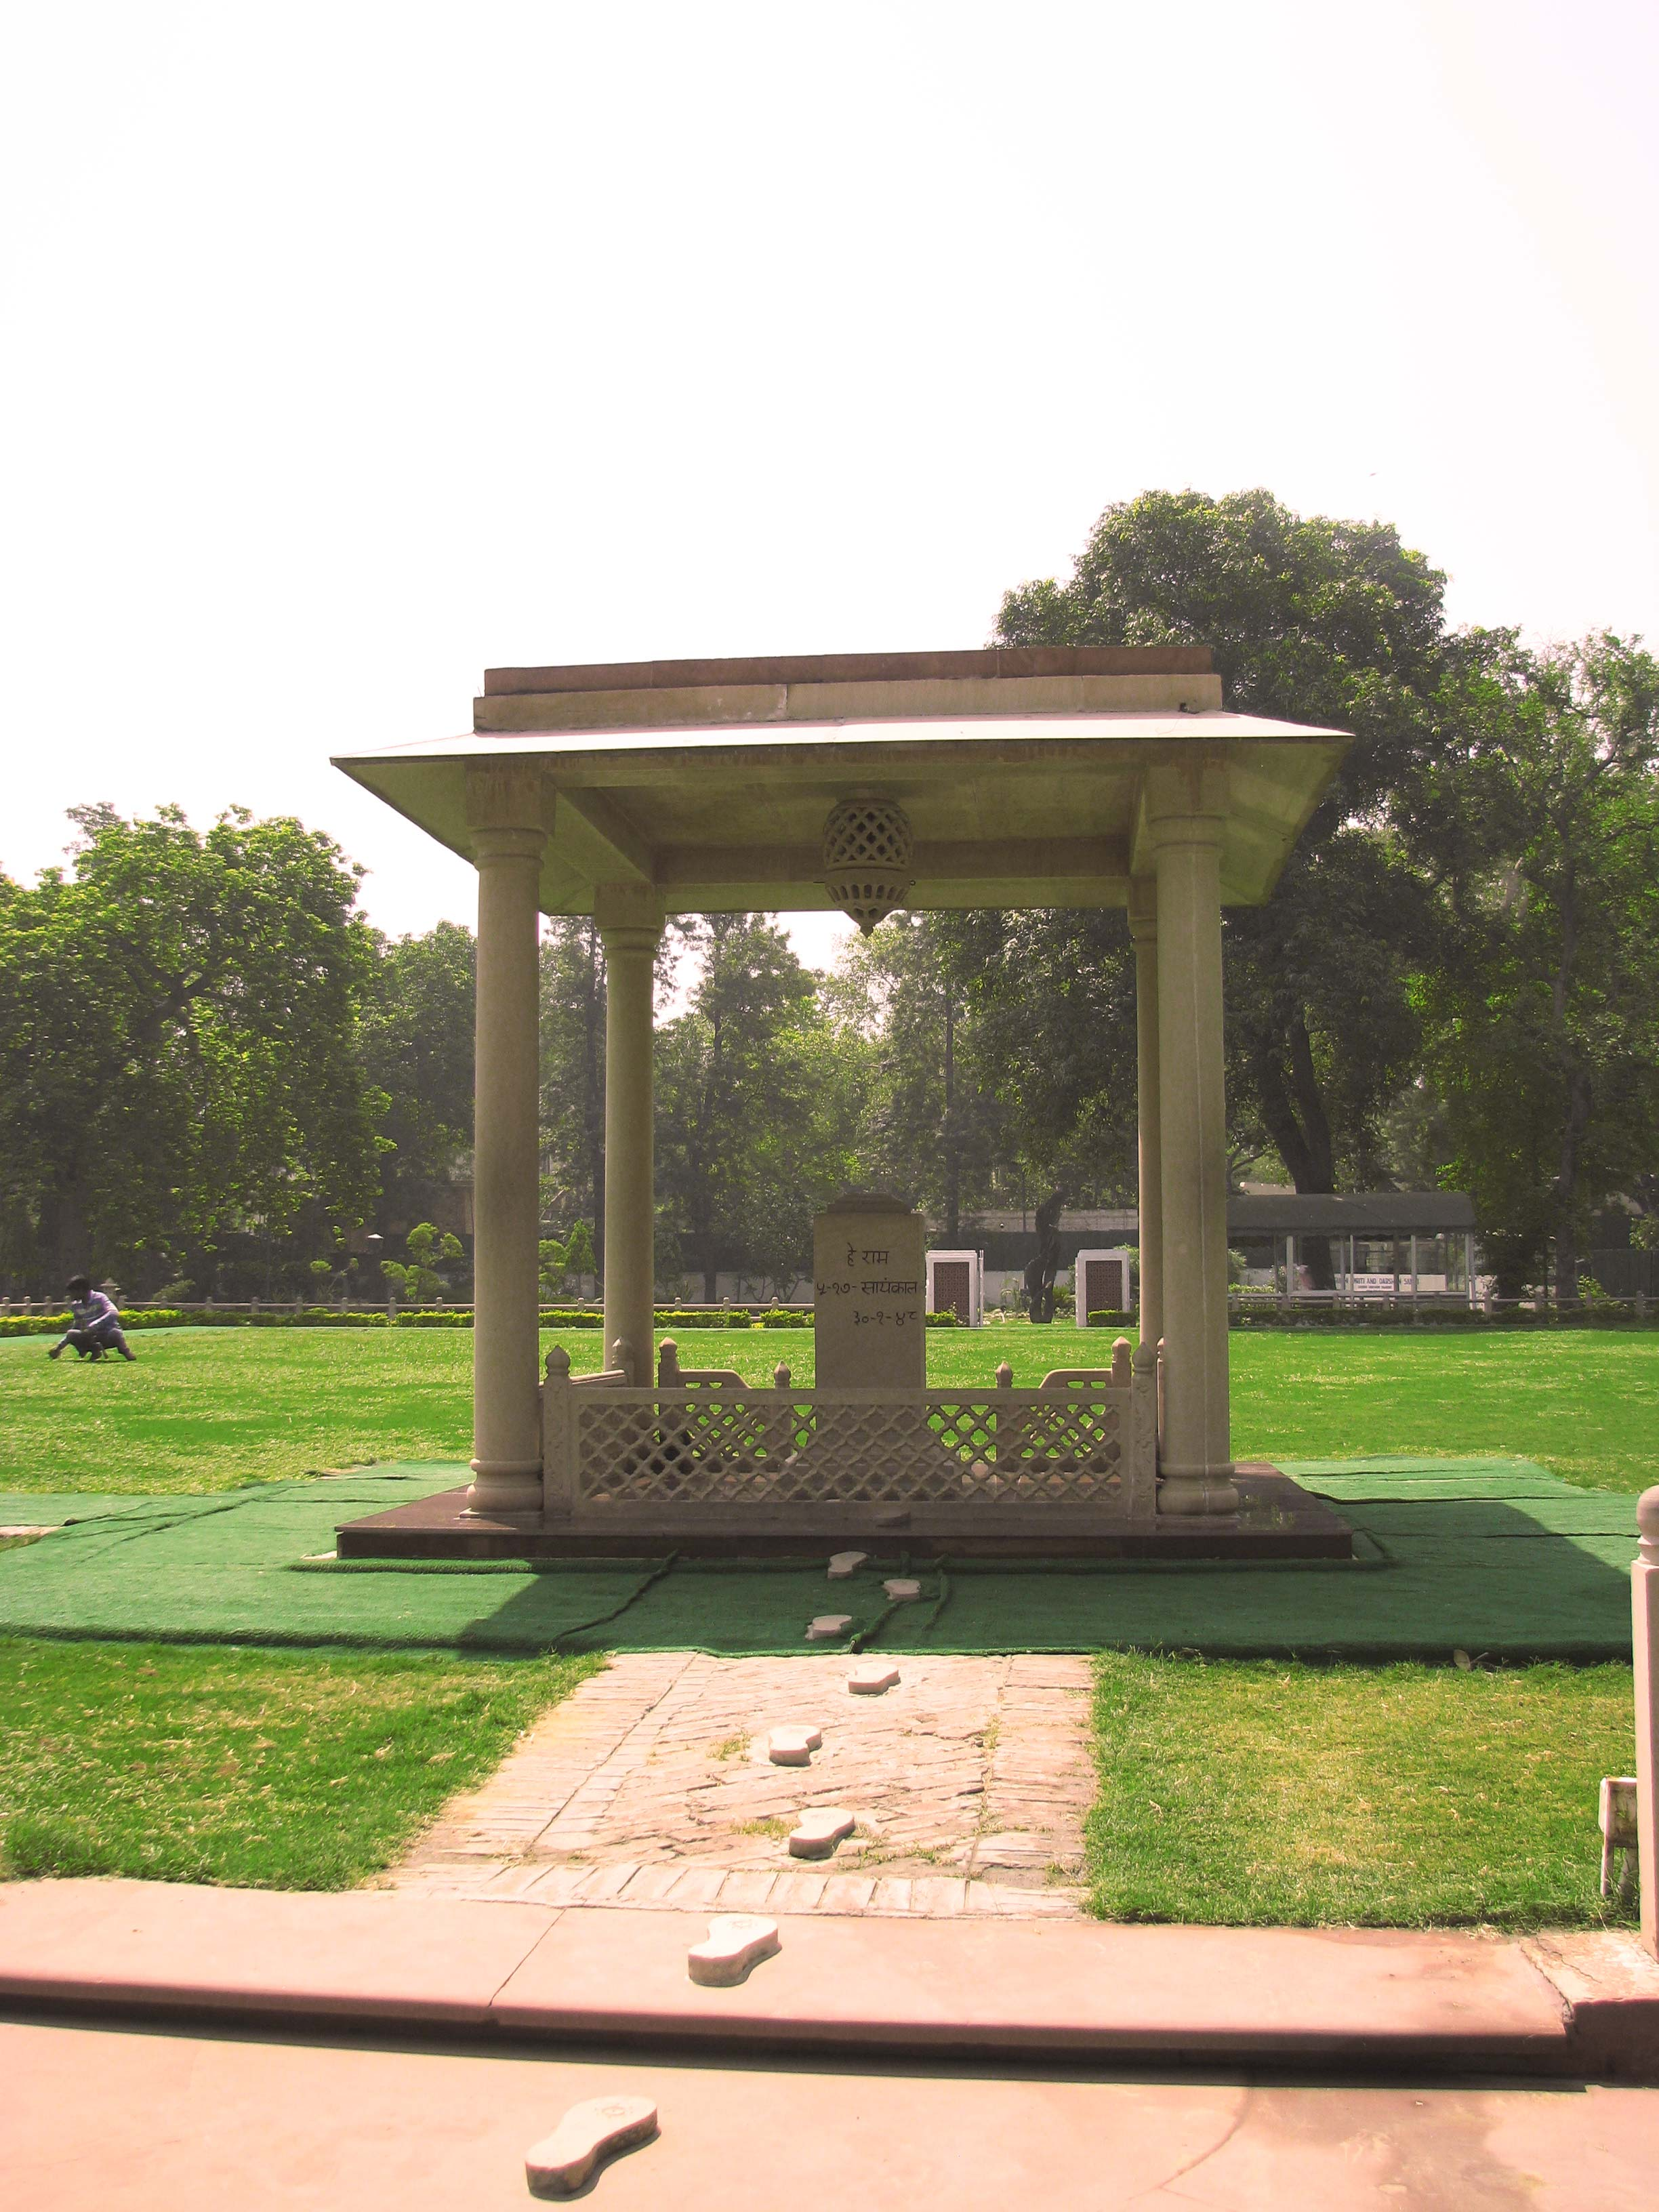 Martyr column in New-Delhi - Footprints of Gandhi